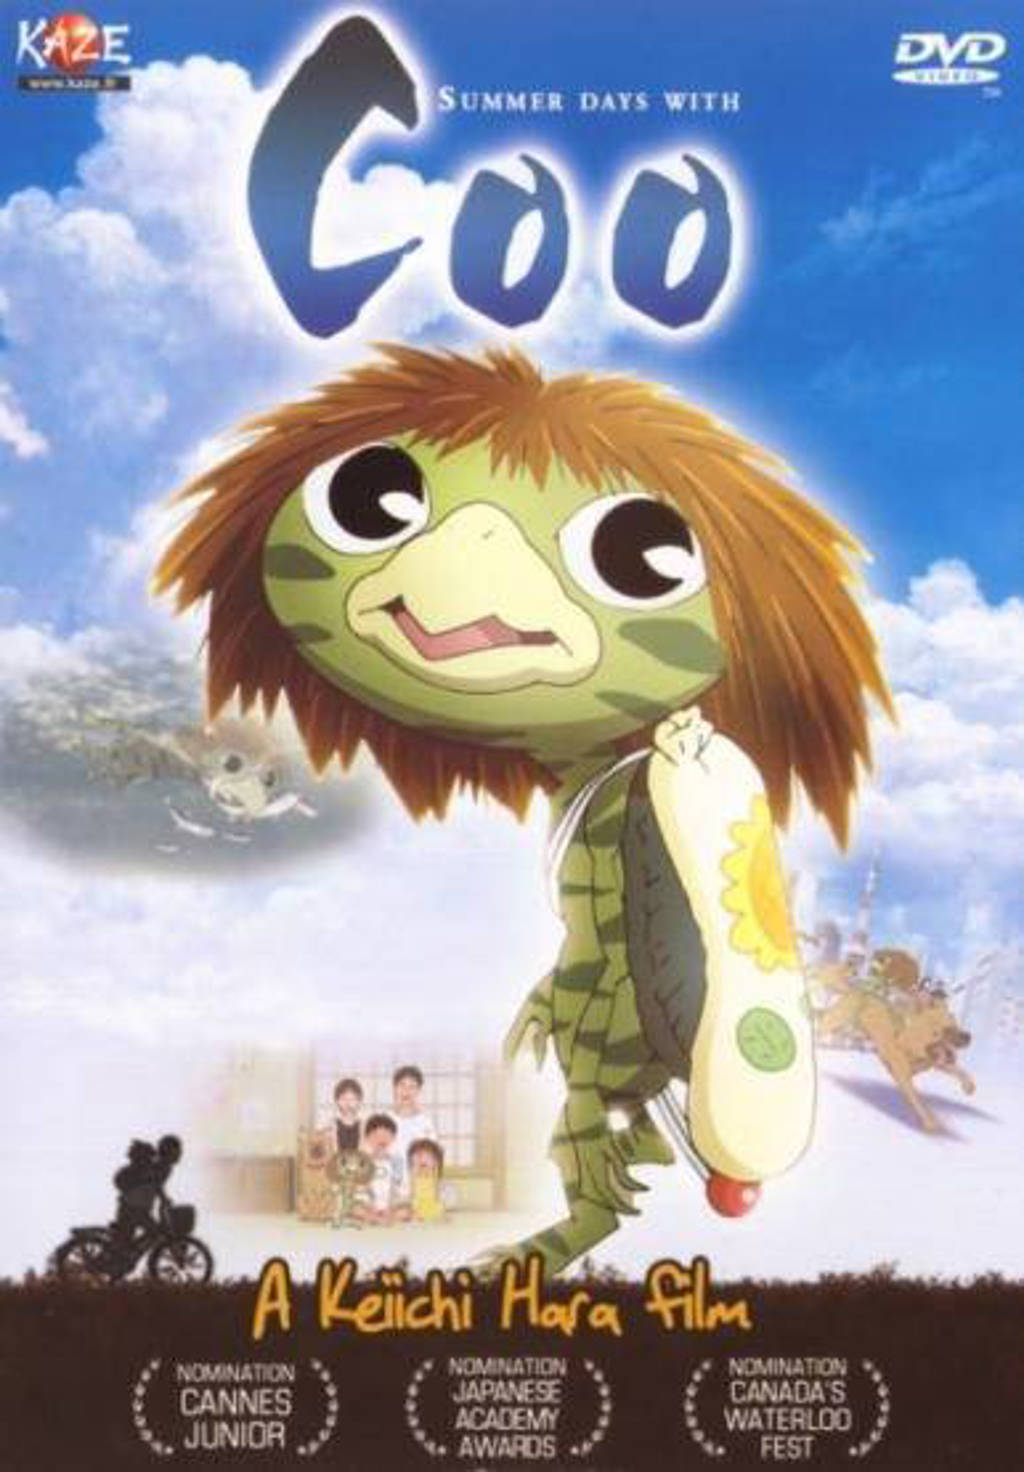 Summer days with coo (DVD)